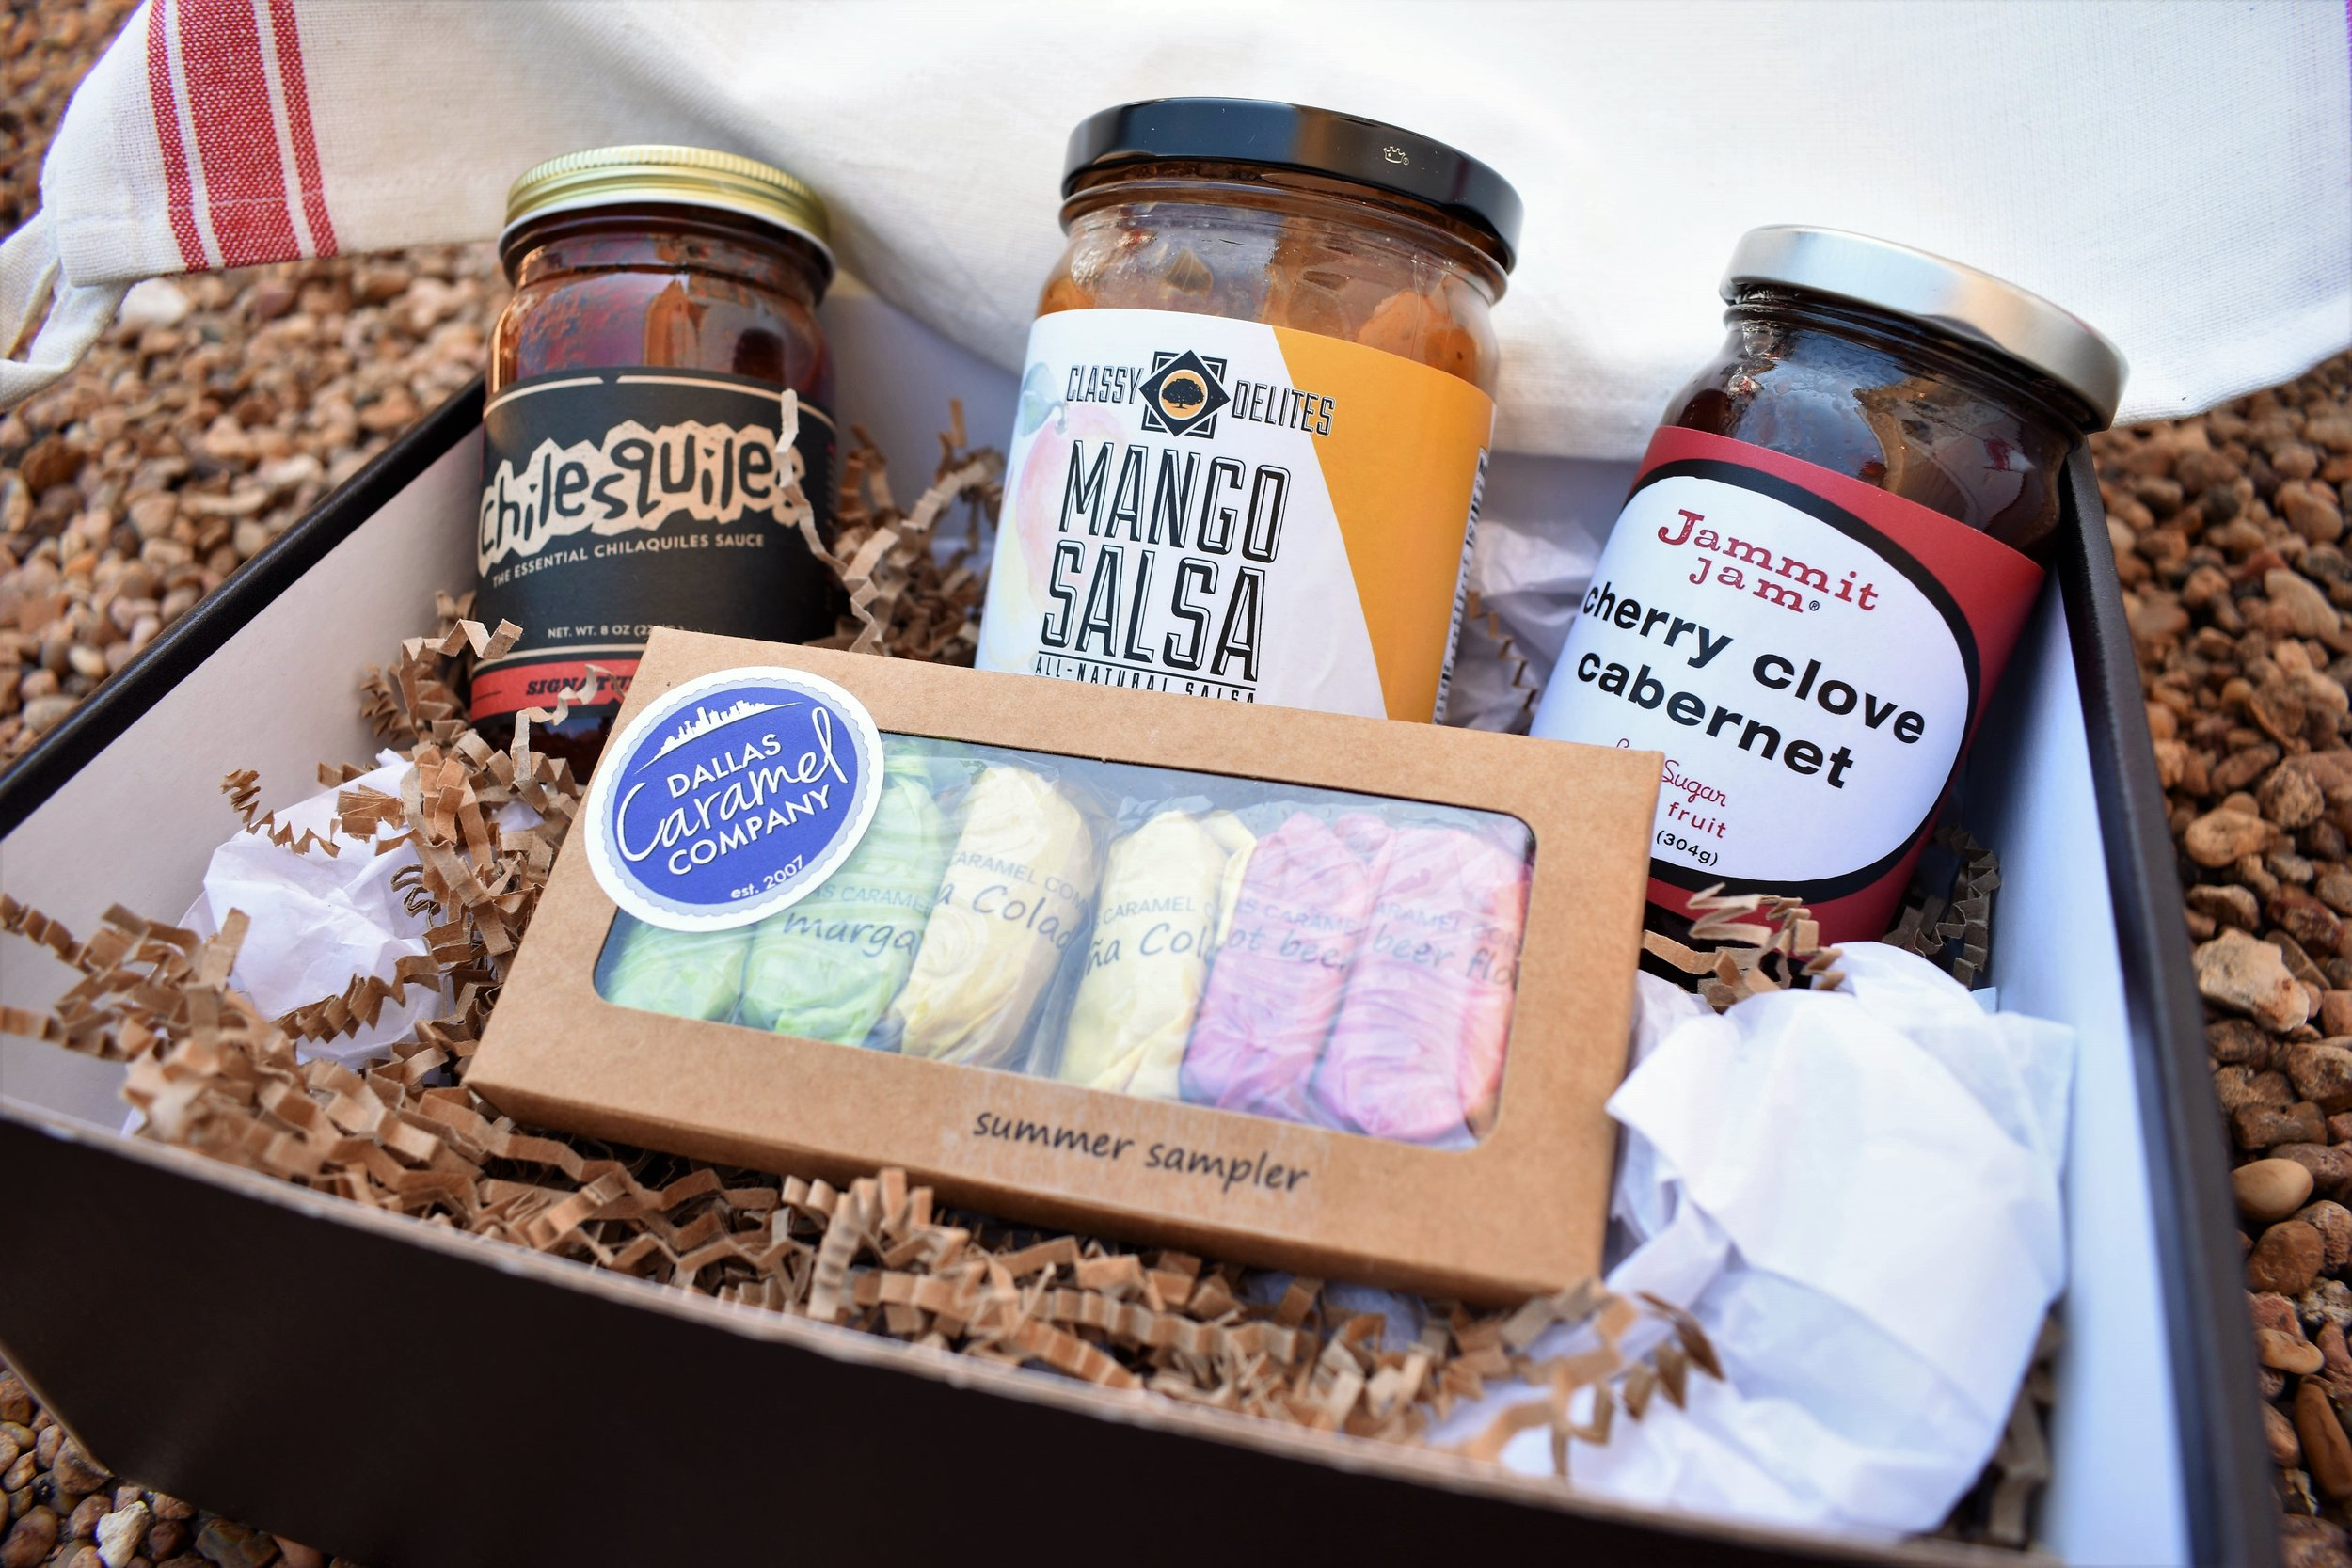 cool beans box texas subscription gift box sowing seeds blog